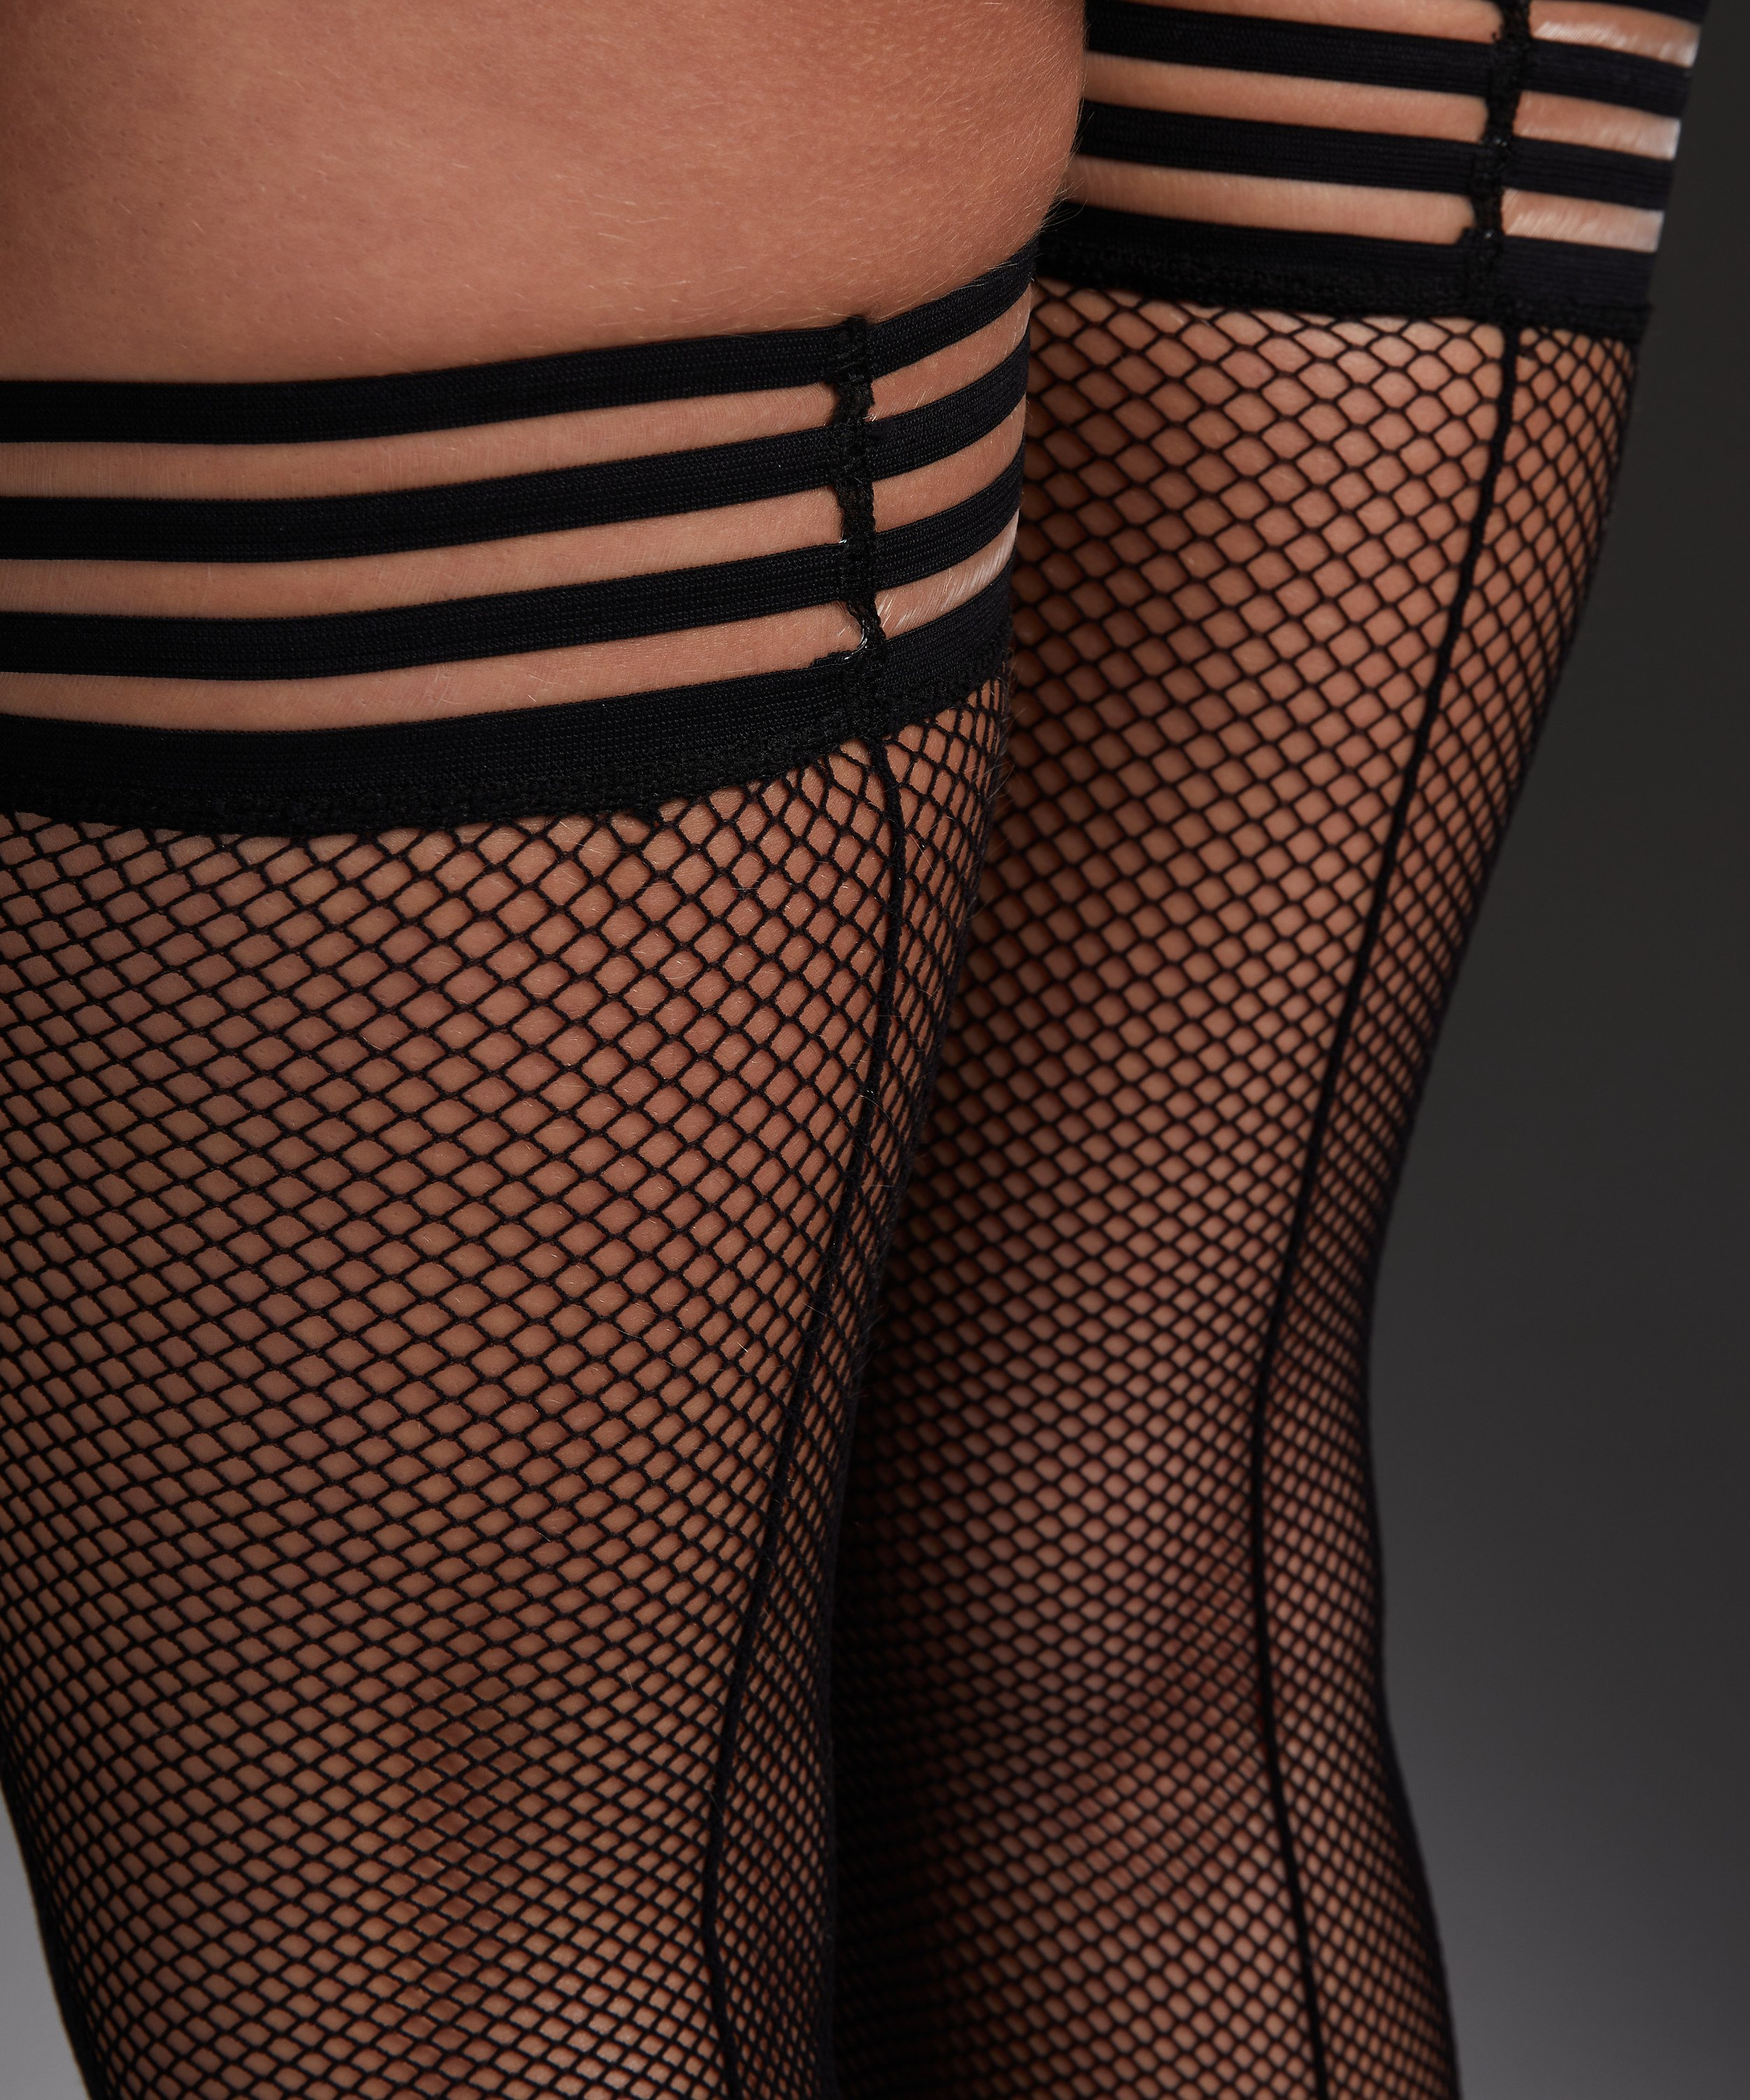 Stay-ups Private Striped Top Fishnet, Schwarz, main